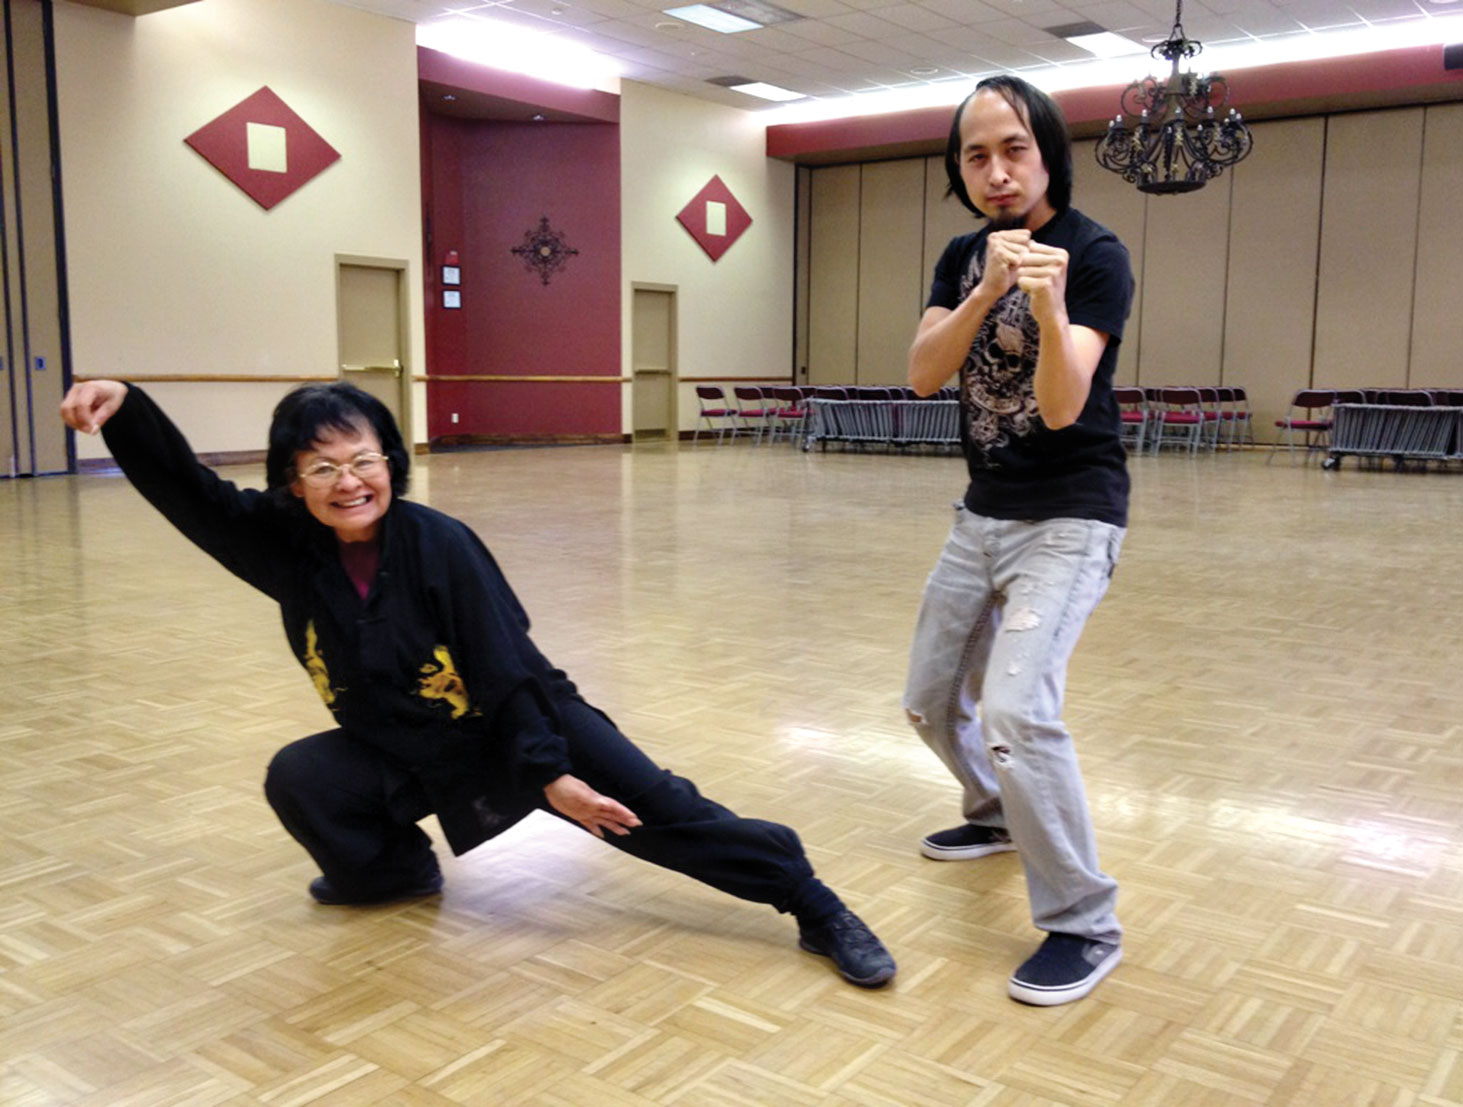 Chiyoko Starkel and her son Cody showed the SunBird Tai Chi class their moves!